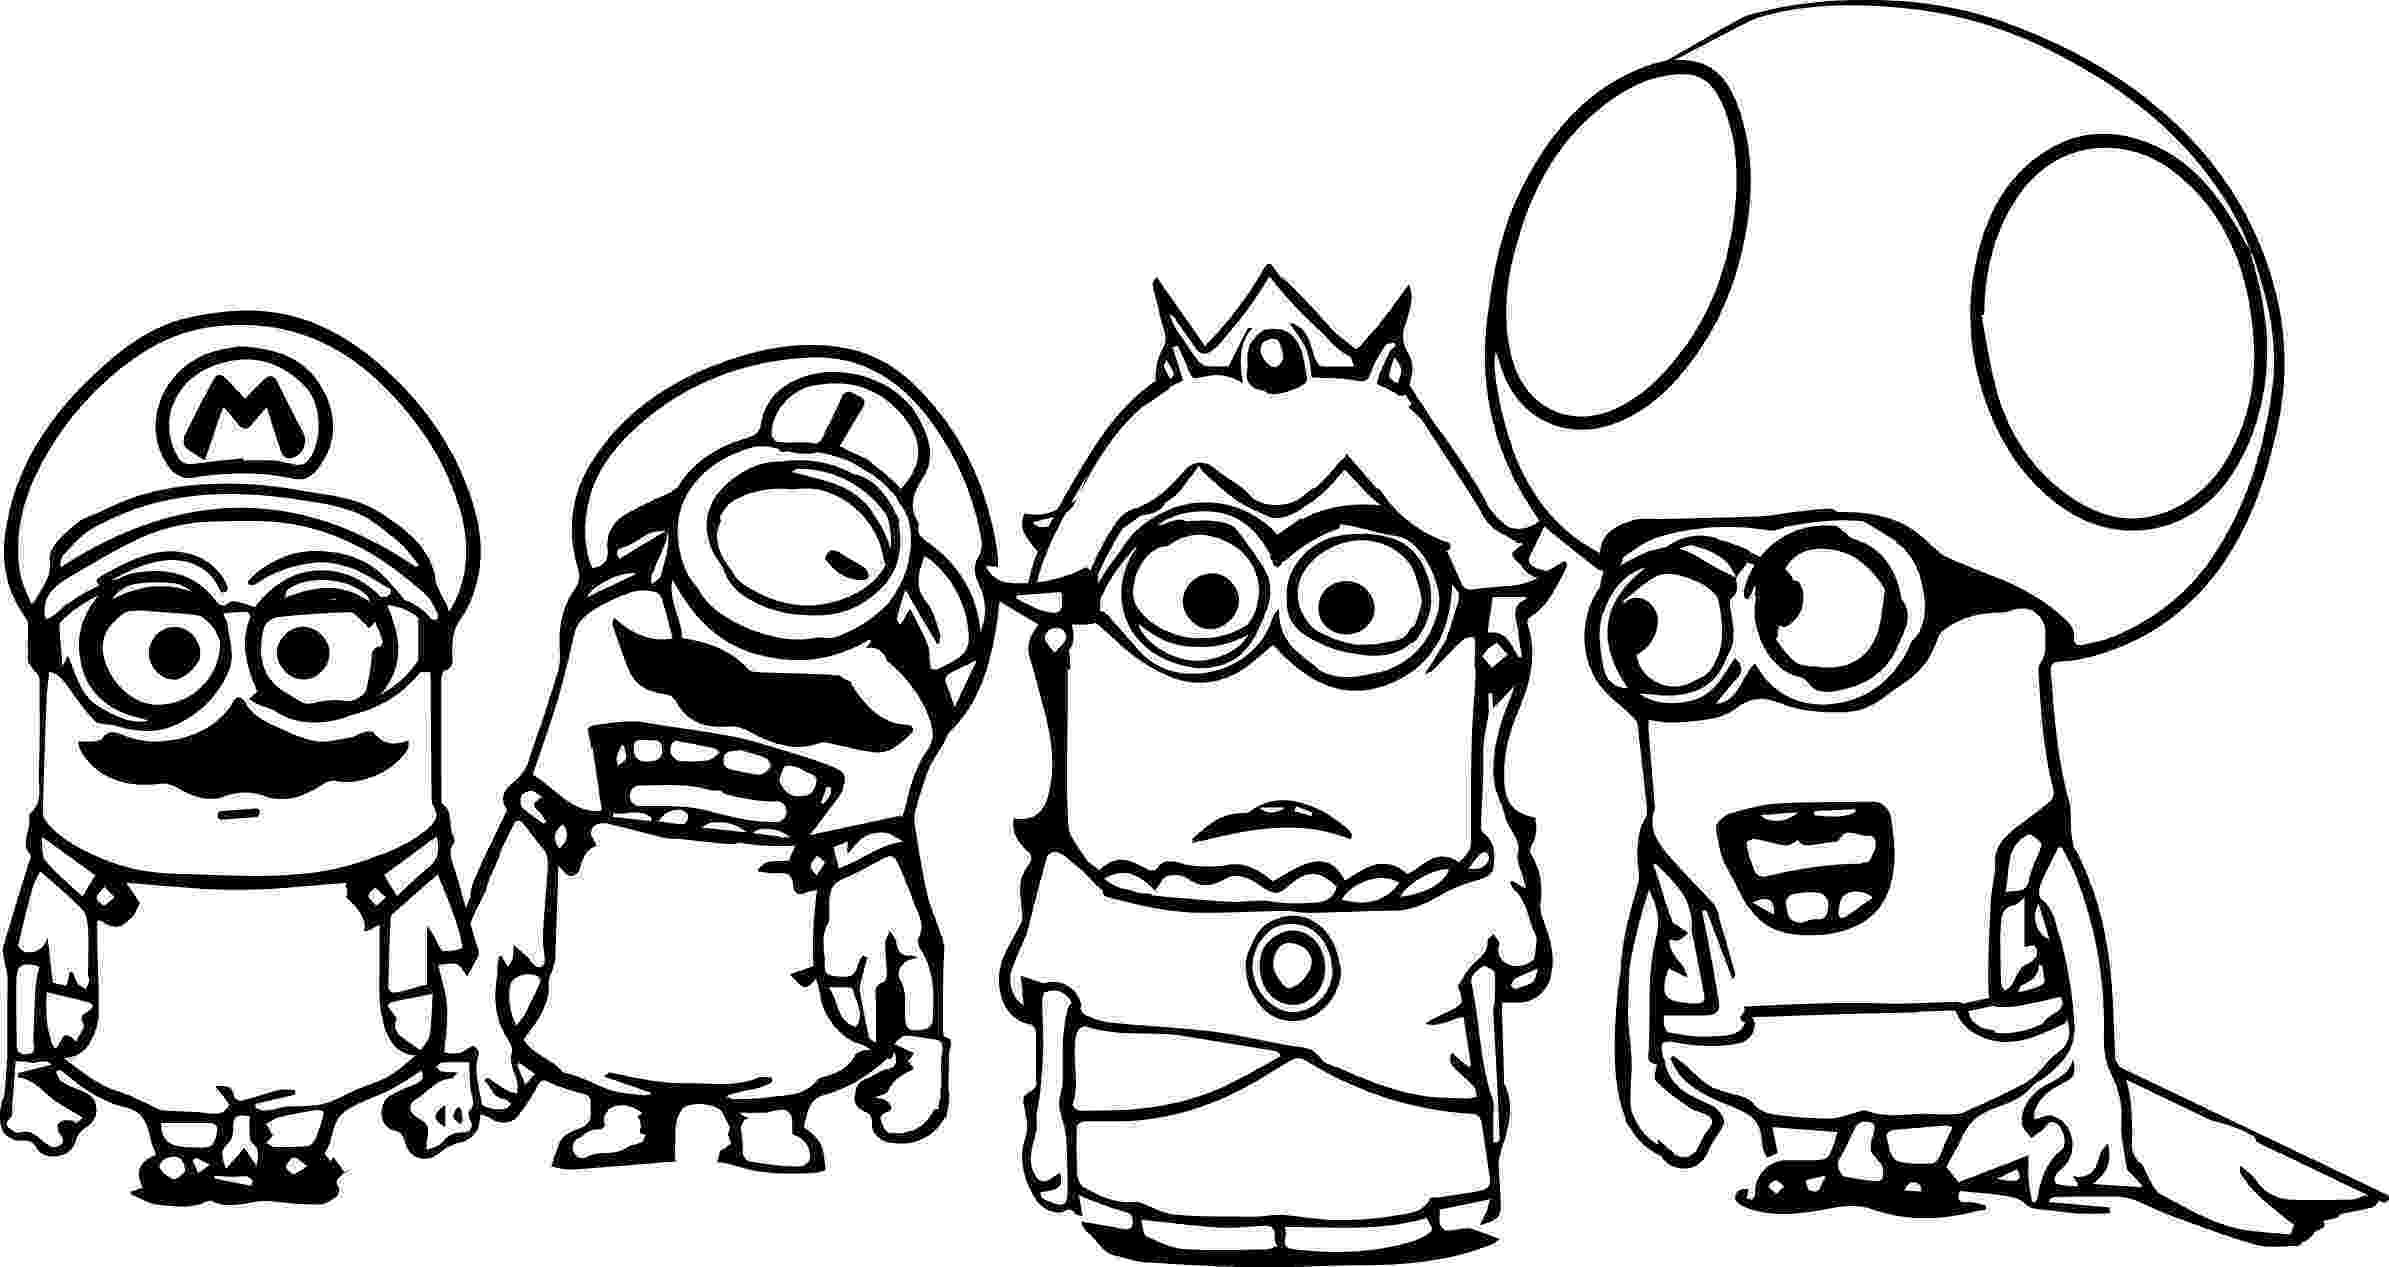 minion colouring pictures to print minion coloring pages from despicable me for free pictures colouring minion